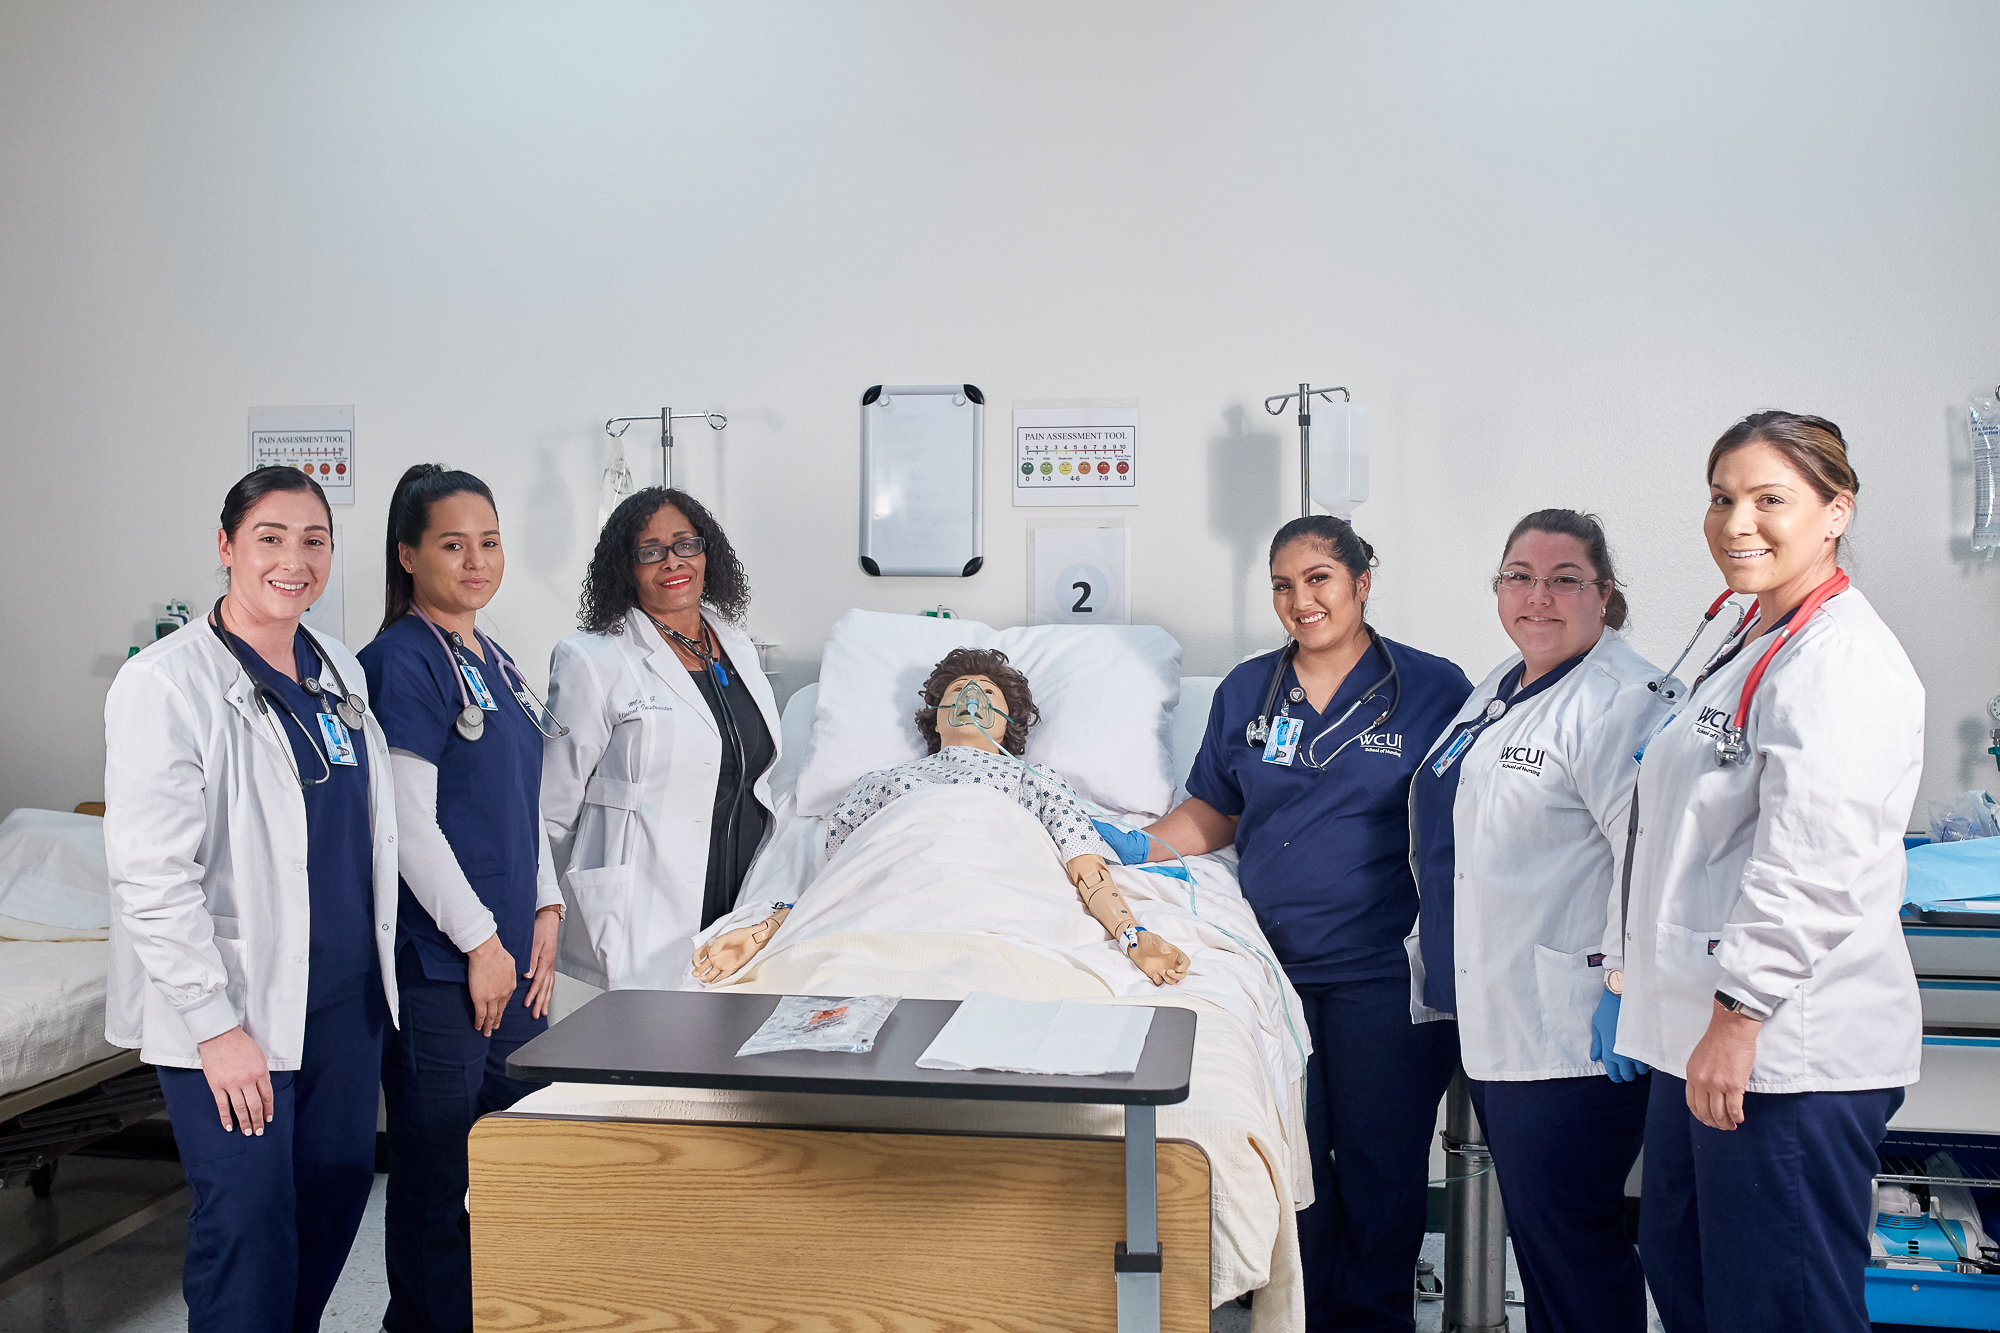 WCUI nurses and an instructor smiling in a nursing lab around a mock patient